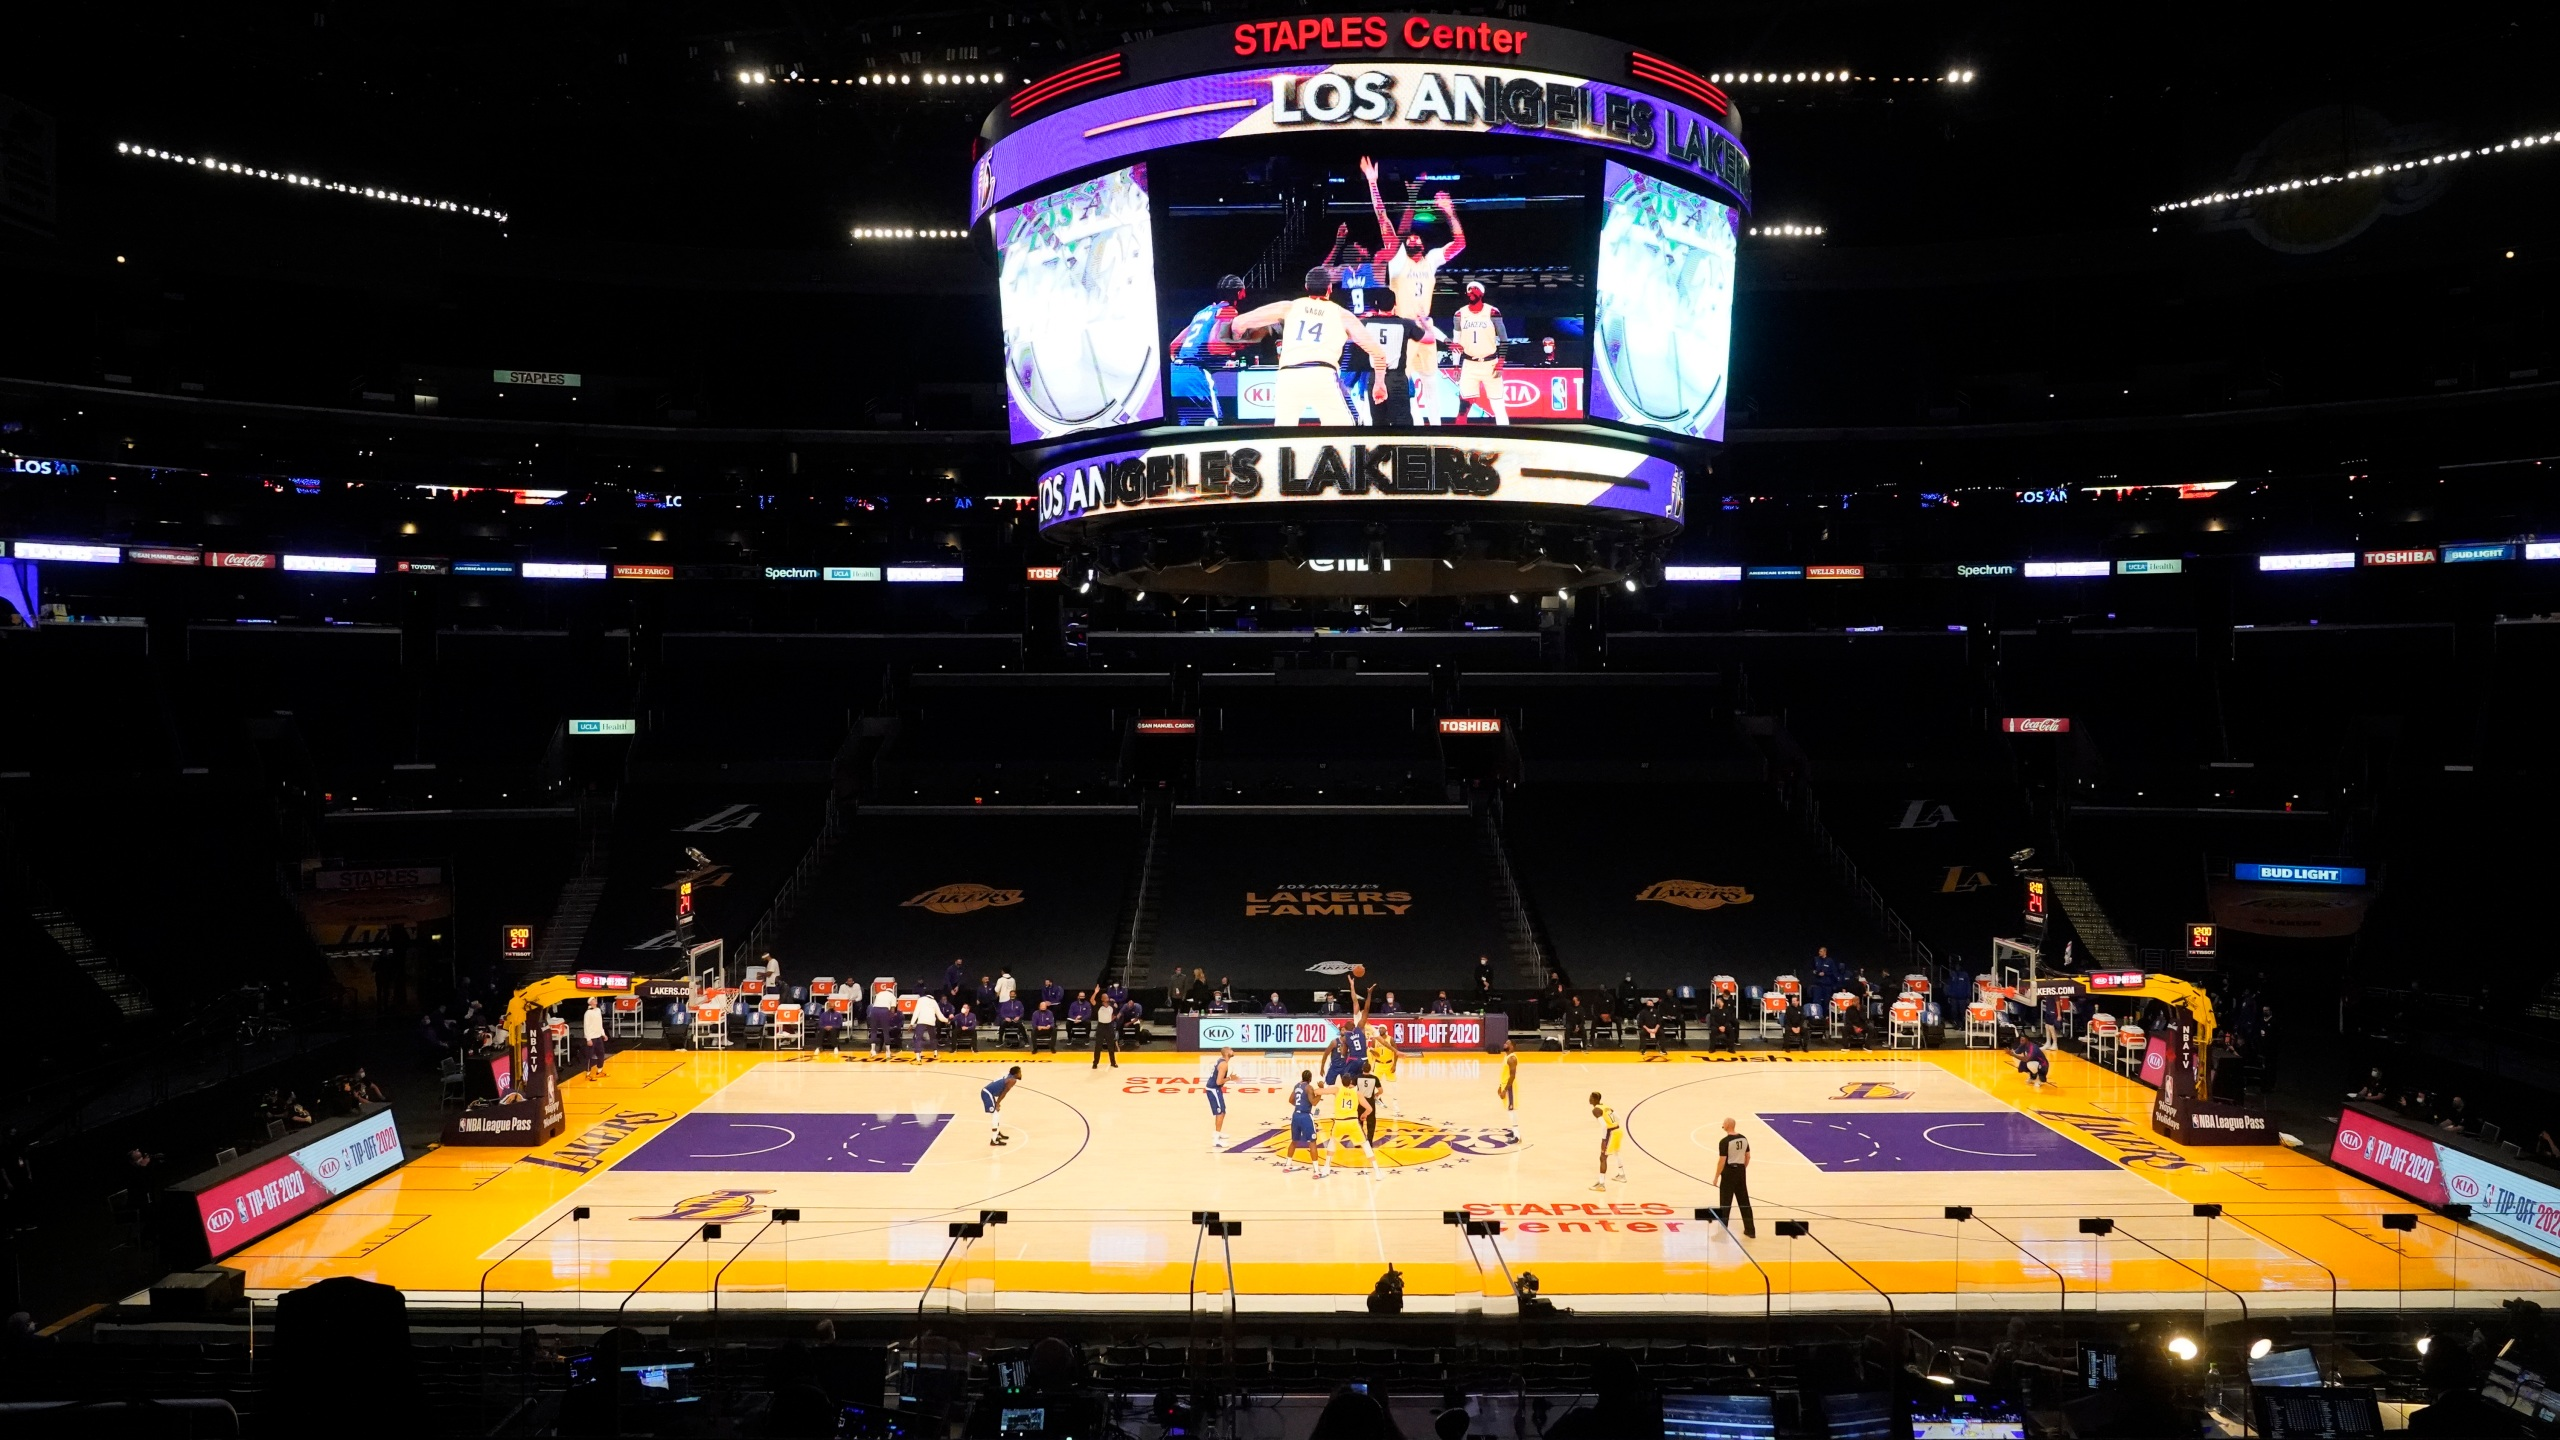 The Los Angeles Lakers and the Los Angeles Clippers tip off in an empty Staples Center amid the coronavirus pandemic, to start an NBA basketball game Dec. 22, 2020, in Los Angeles. (AP Photo/Marcio Jose Sanchez)